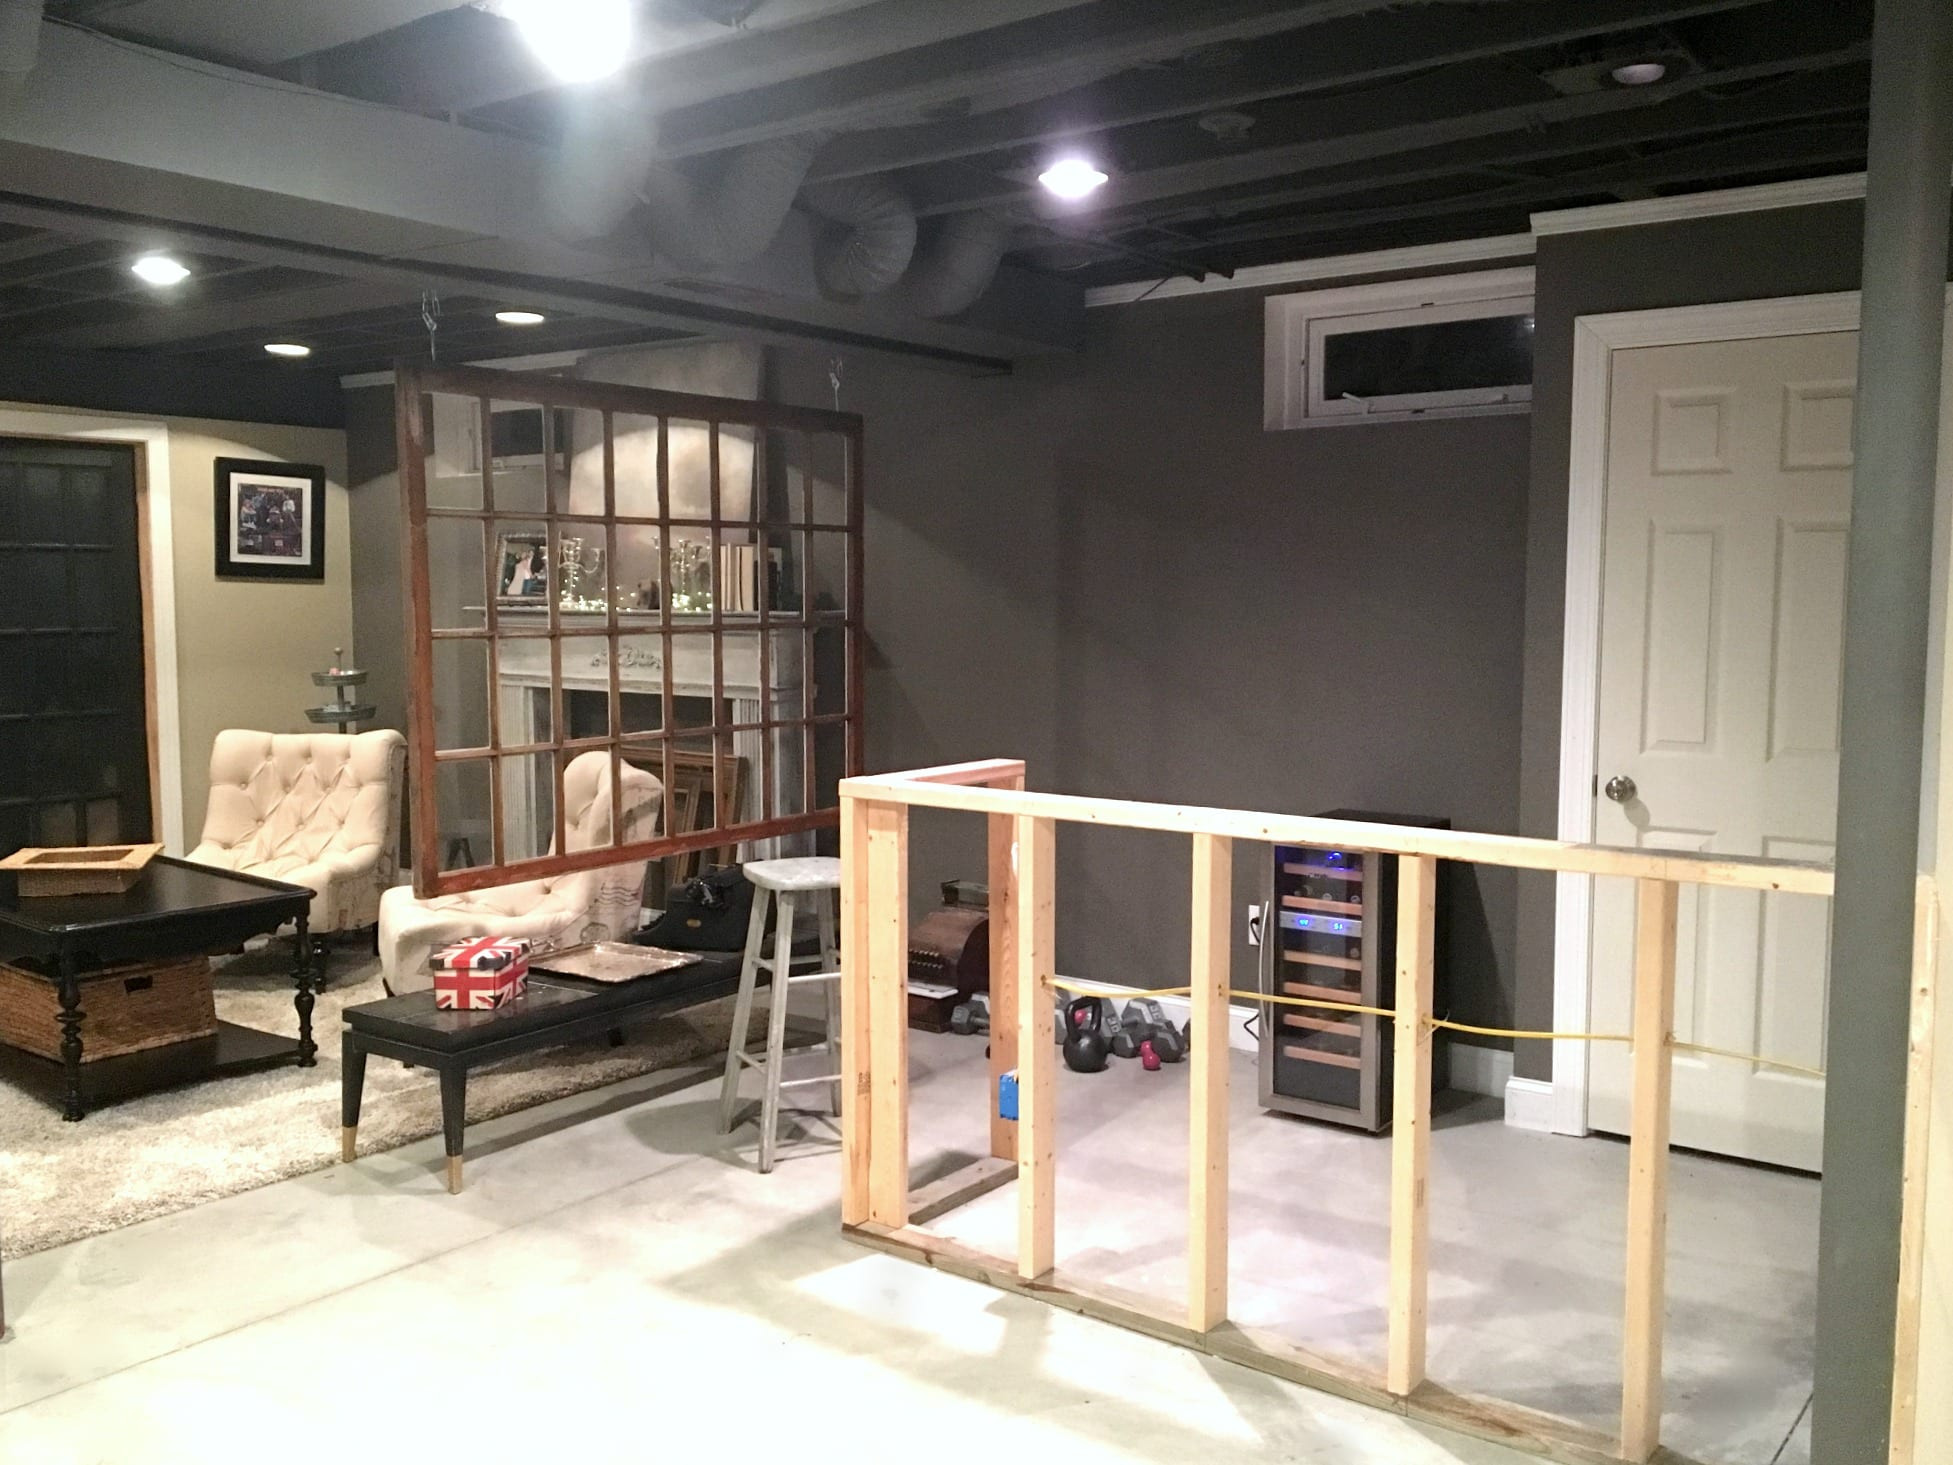 Best ideas about Diy Basement Ideas . Save or Pin DIY Decor Industrial Basement Remodel Now.